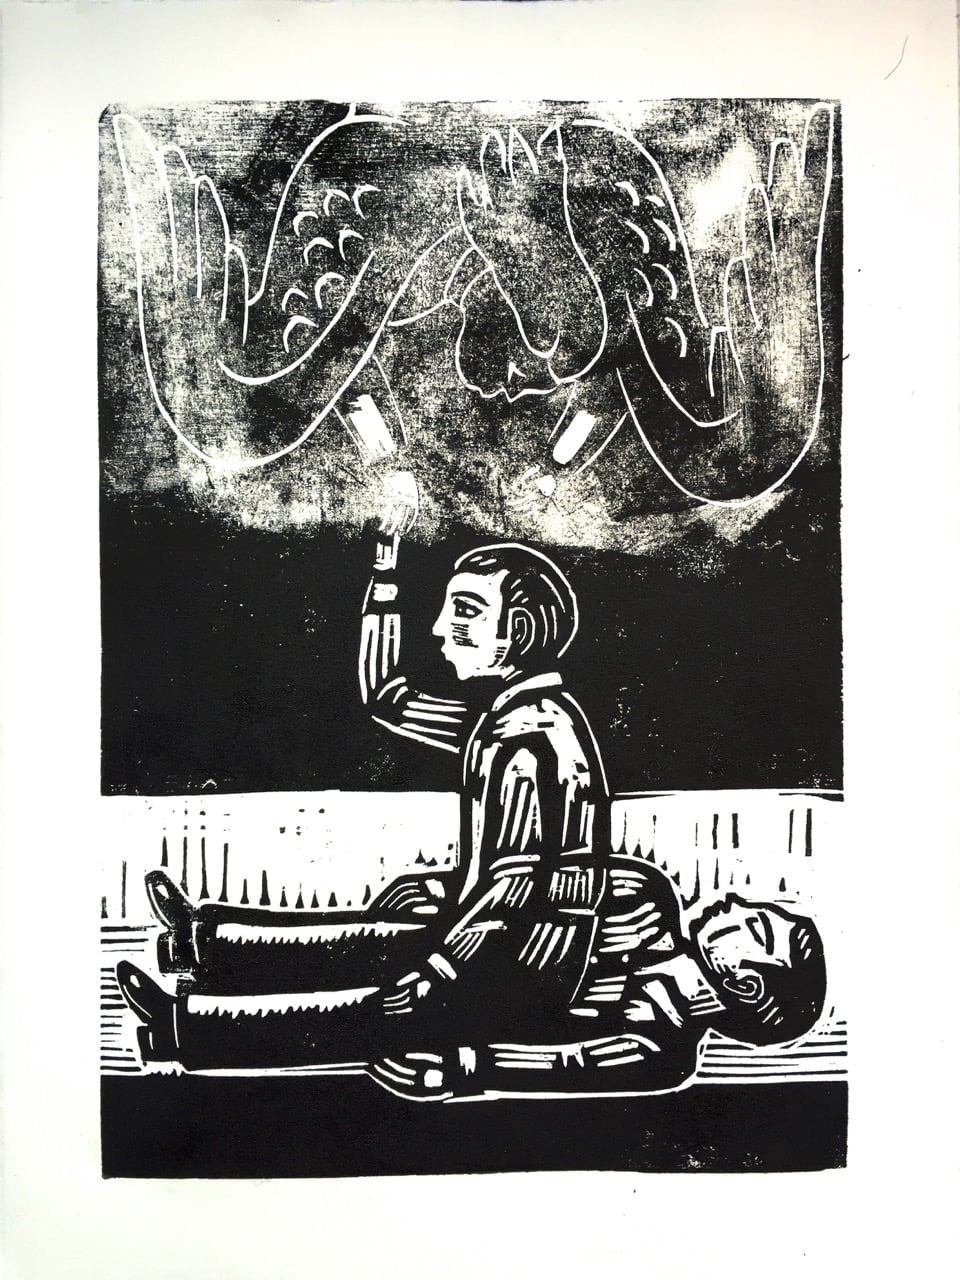 Purchase this original woodblock print here!